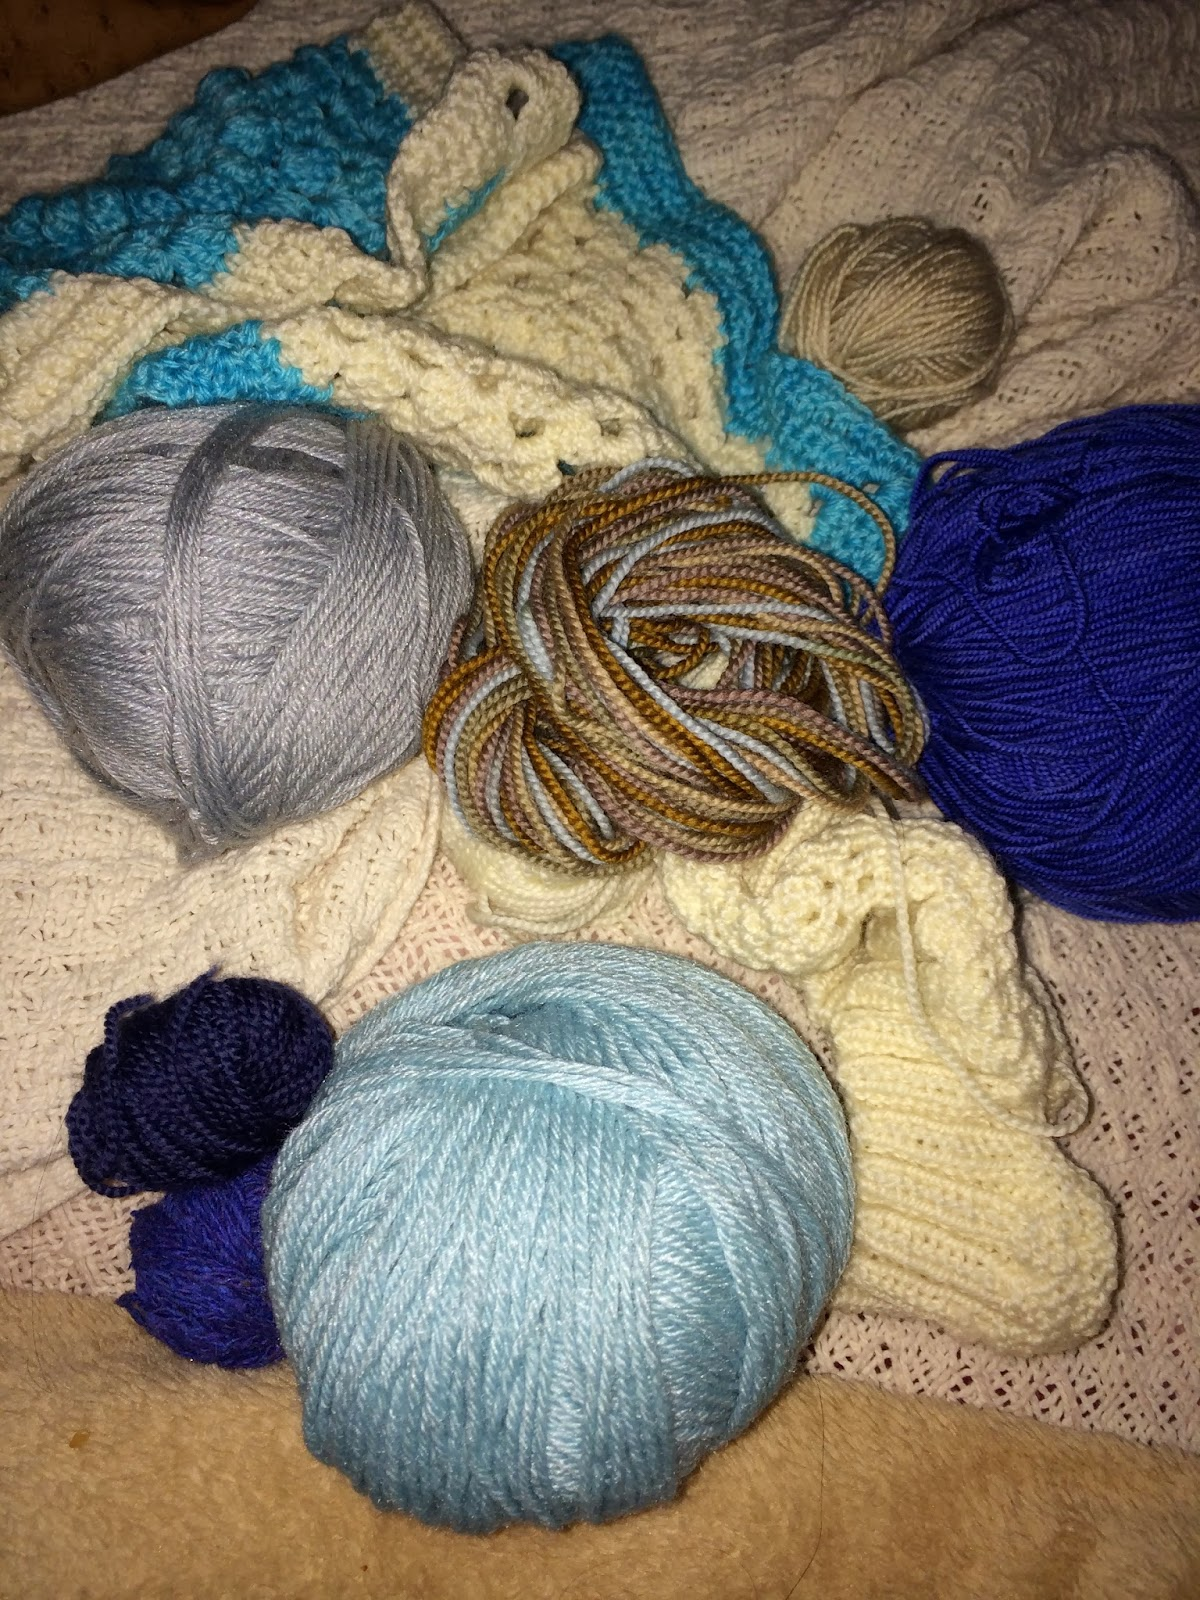 Knitting Joining Yarn Double Knot : Brownie knits monkey see knit